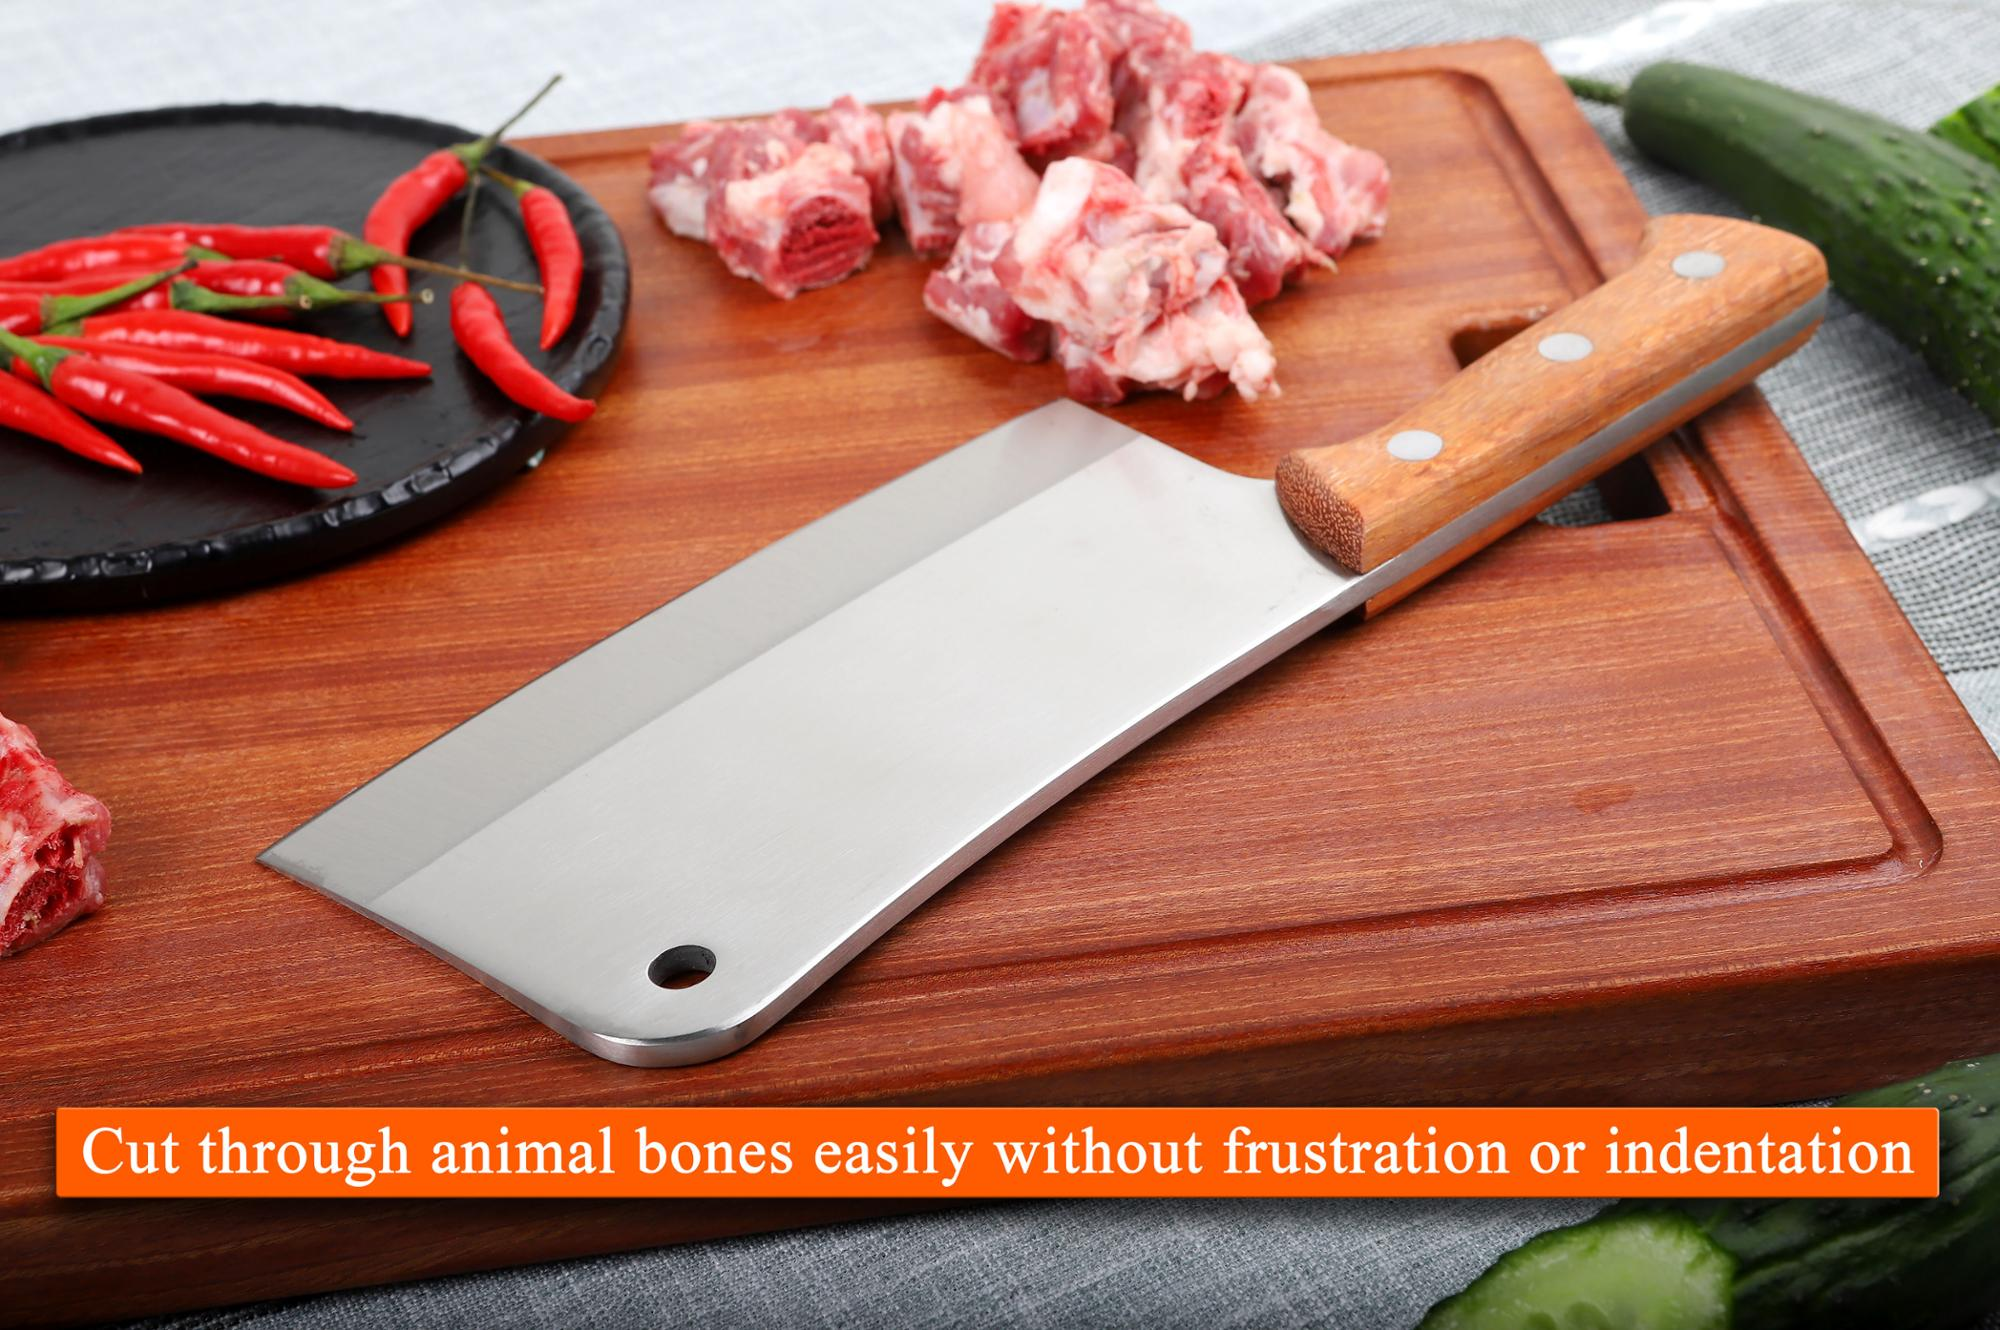 Forged Wooded Handle Heavy Duty Meat Cleaver for Bone